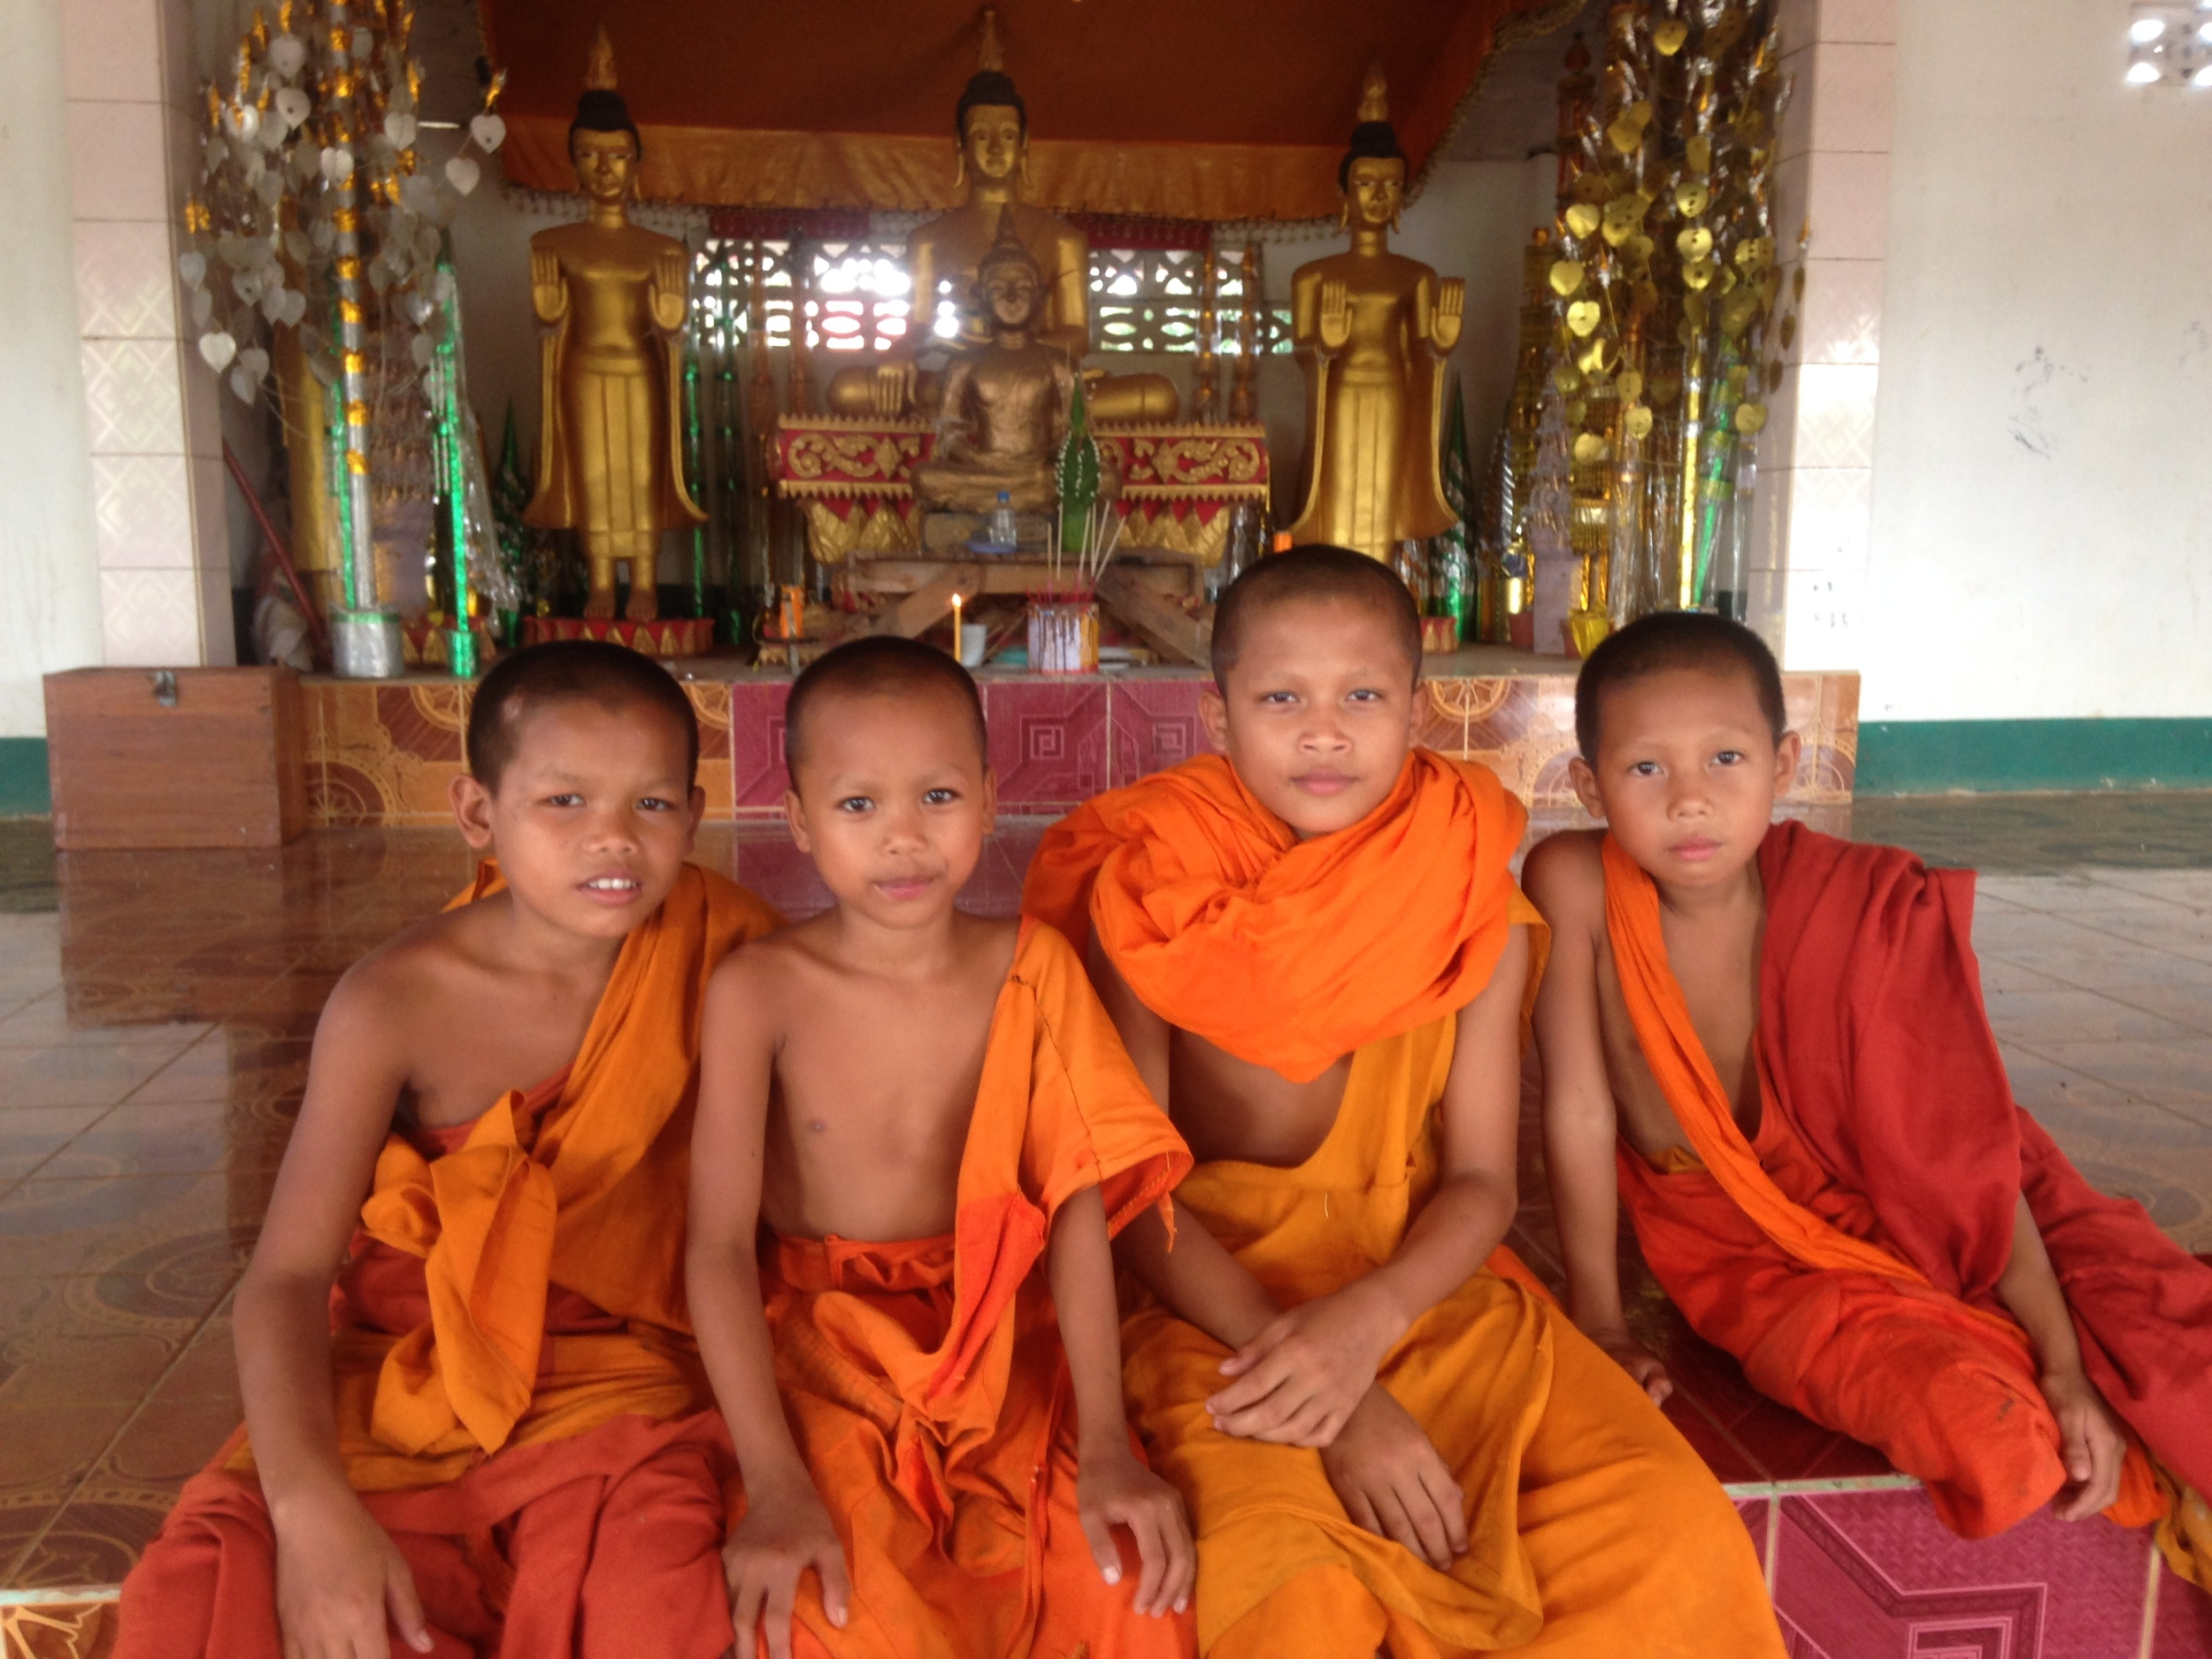 Young monks who helped me pray at a local temple